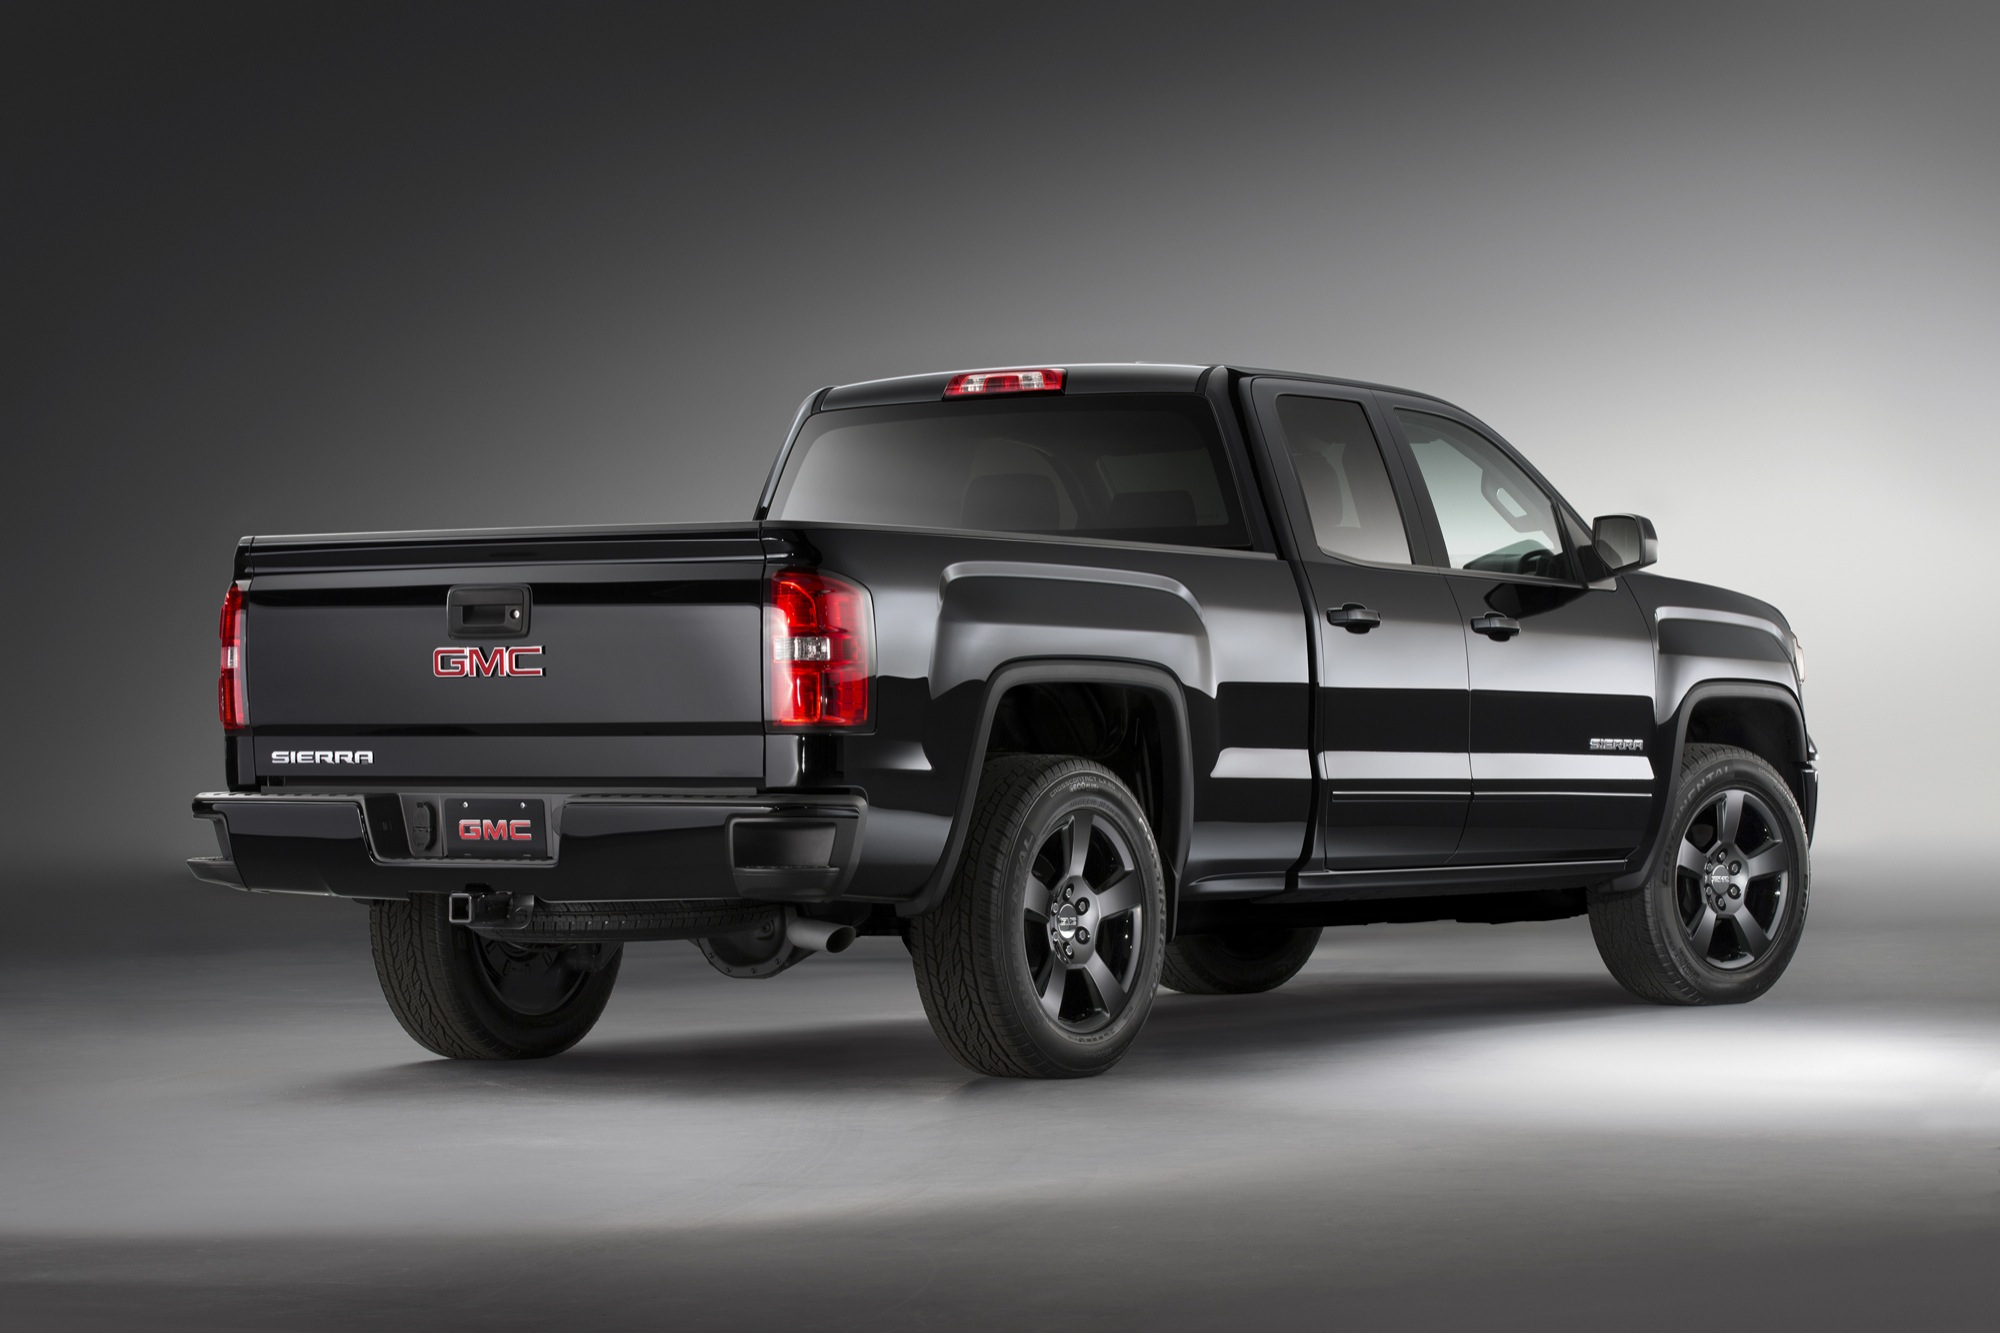 GMC Sierra Elevation Edition photos Gallery with 7 pics